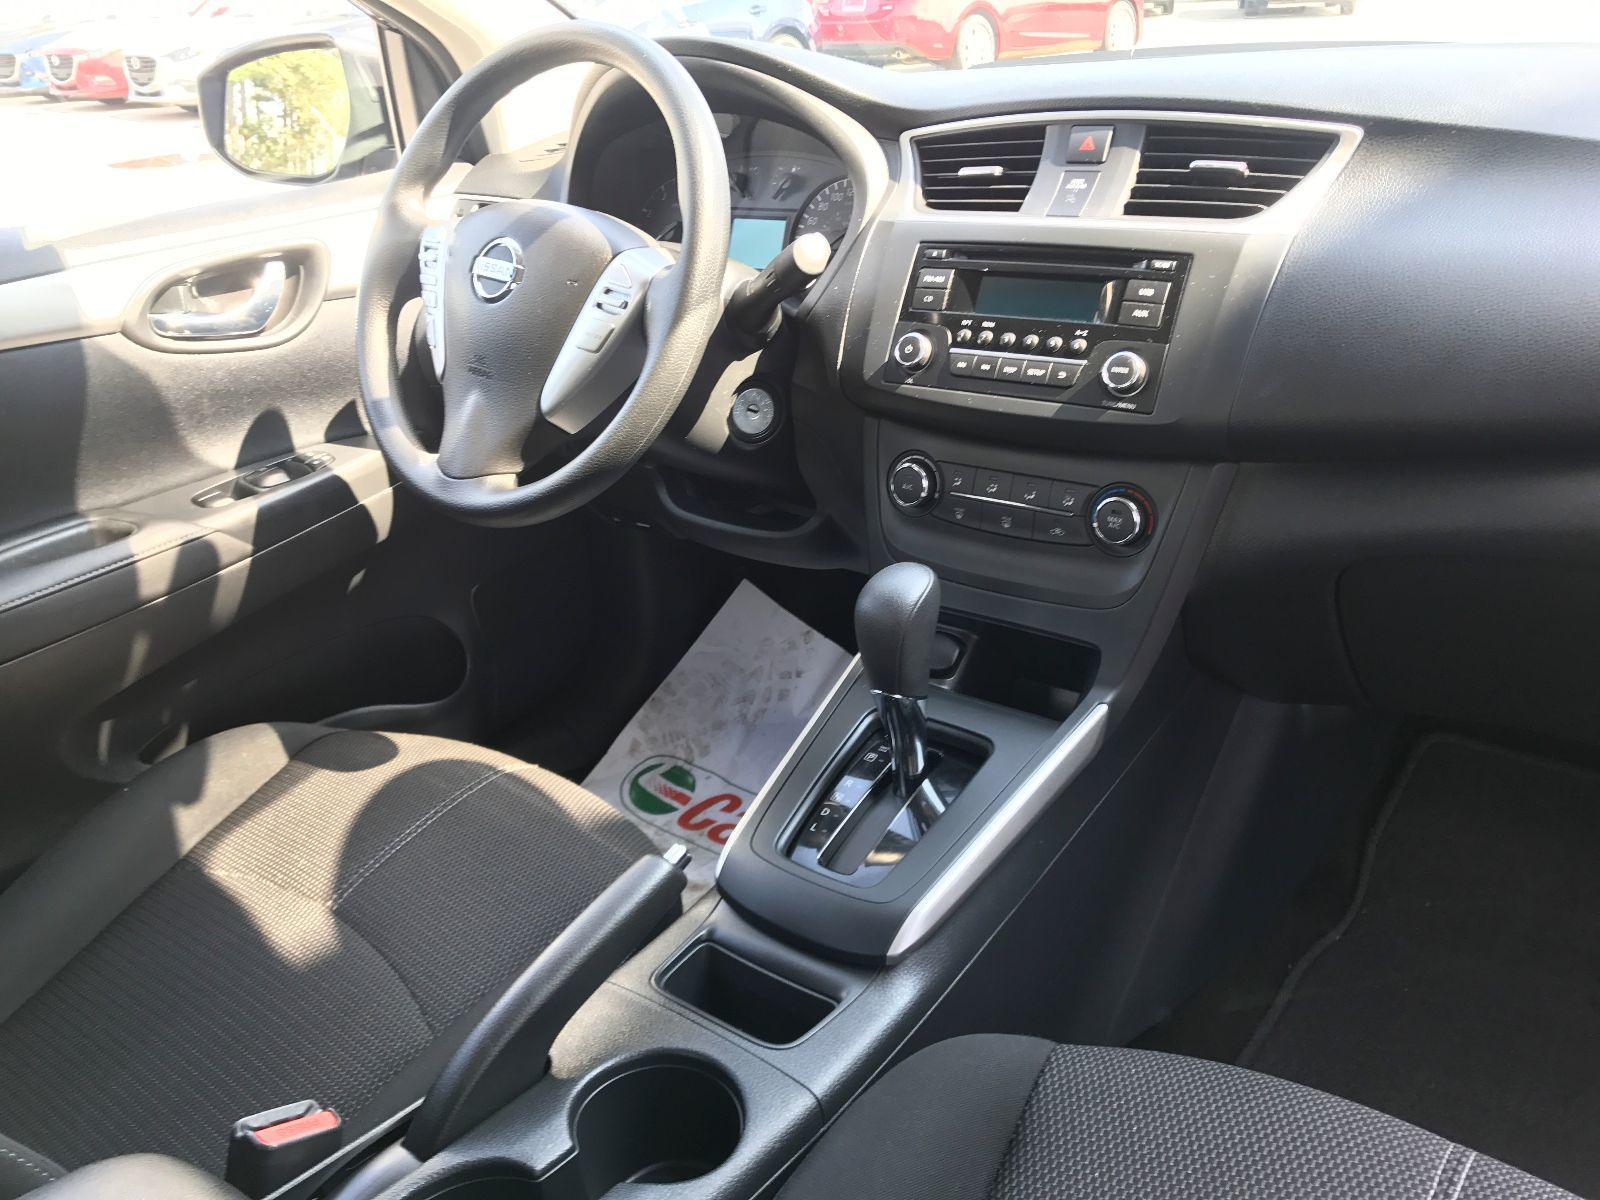 Used Nissan Cars For Sale In Houston Texas Motor Trend